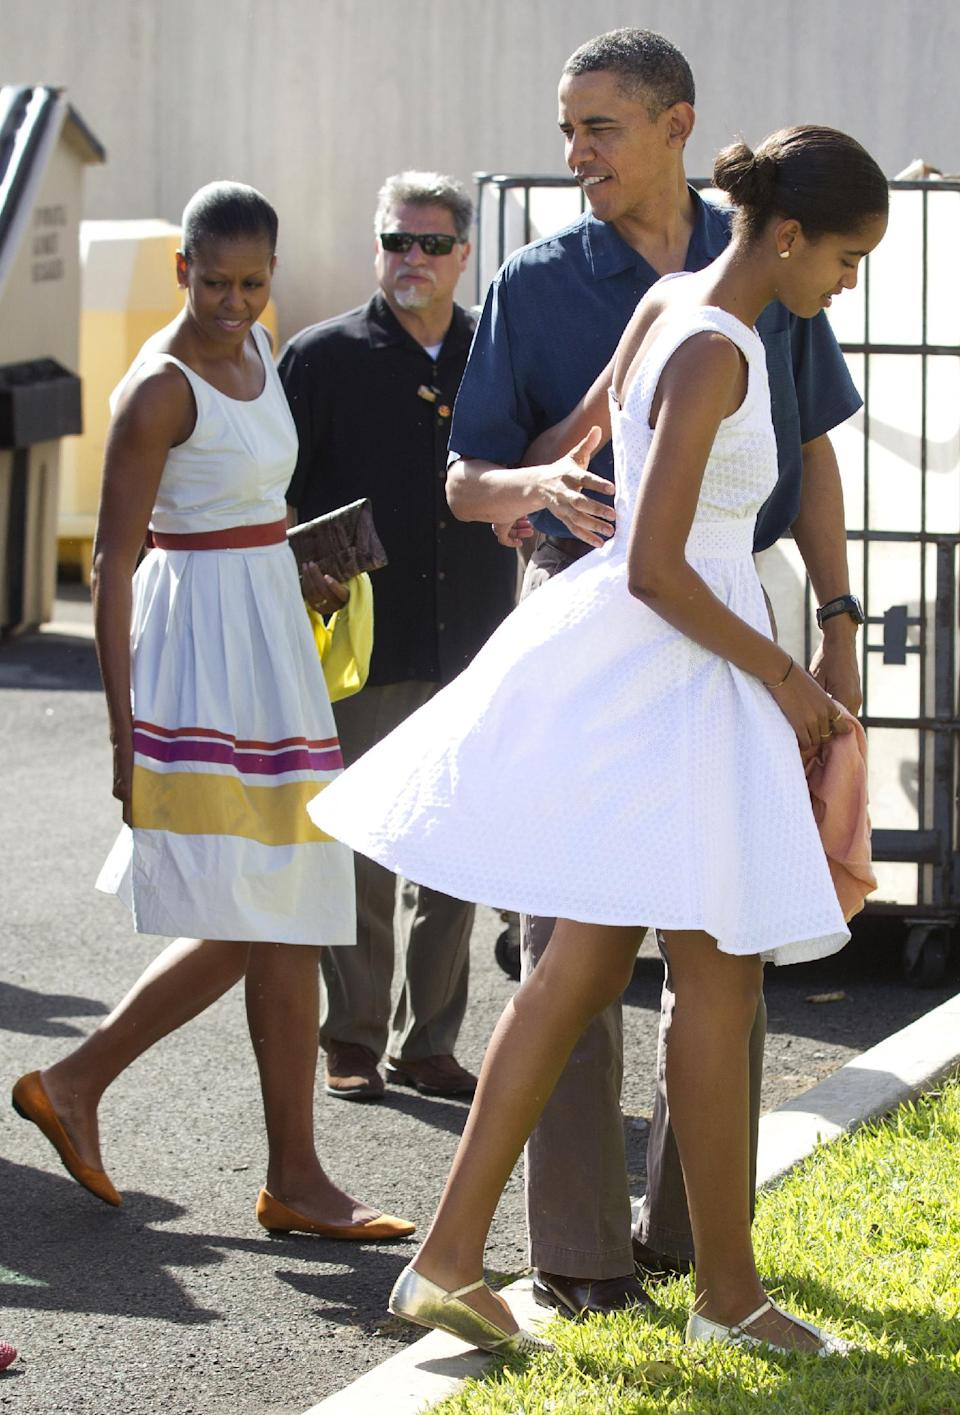 President Barack Obama, second from right, first lady Michelle Obama, left, and their daughters Malia, right, and Sasha, not seen, arrive to attend Christmas service at the Kaneohe bay Chapel on Marine Corps Base Hawaii, Sunday, Dec. 25, 2011, in Kaneohe, Hawaii. (AP Photo/Carolyn Kaster)